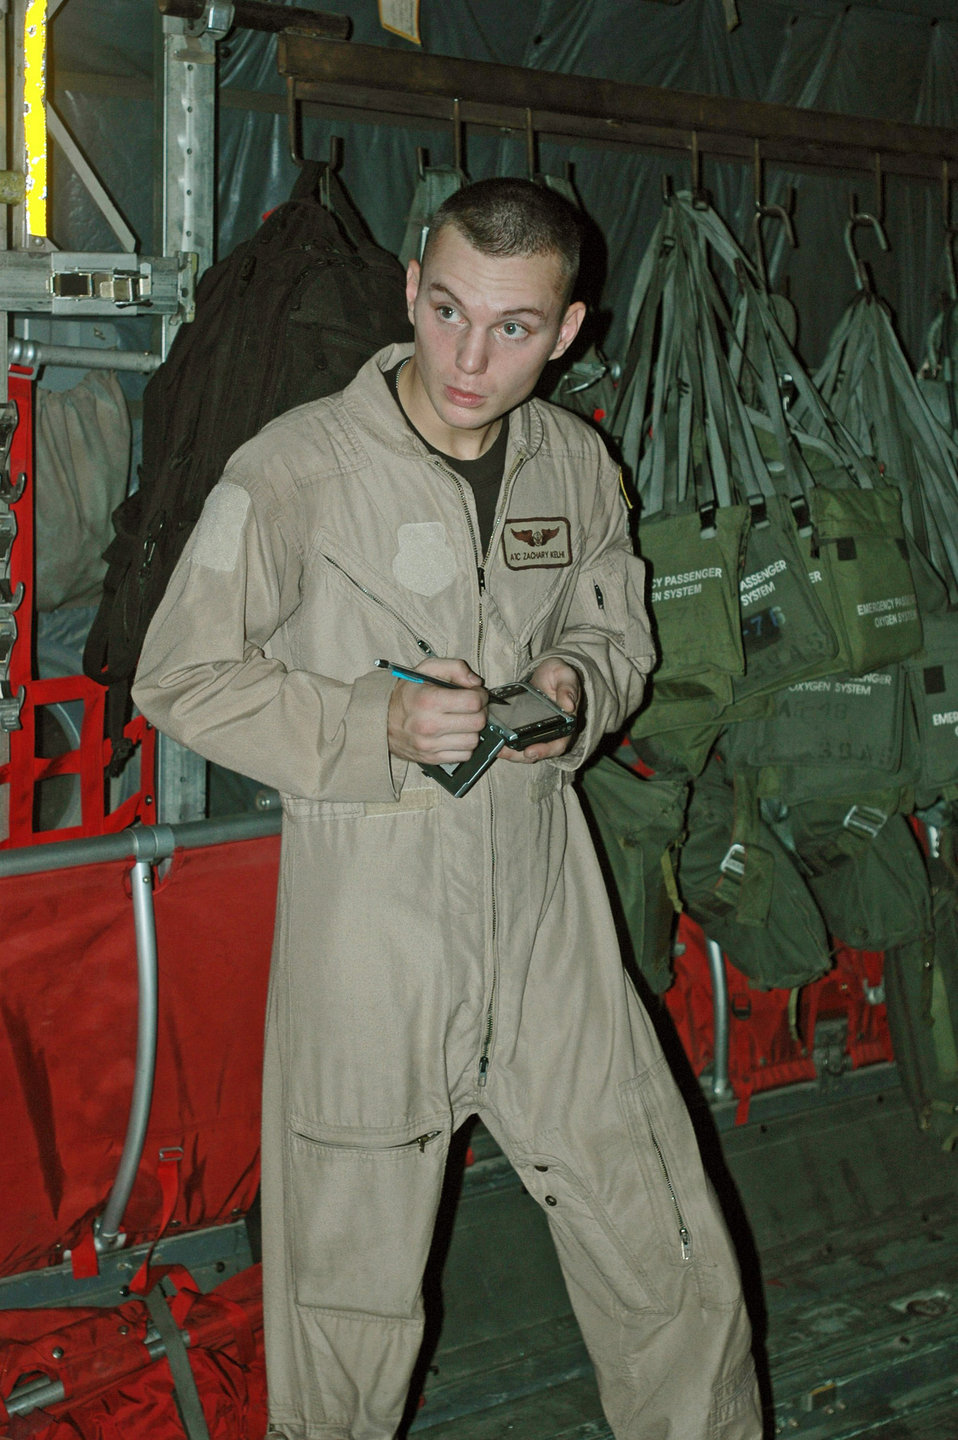 Loadmasters: night life of C-130 mission hackers